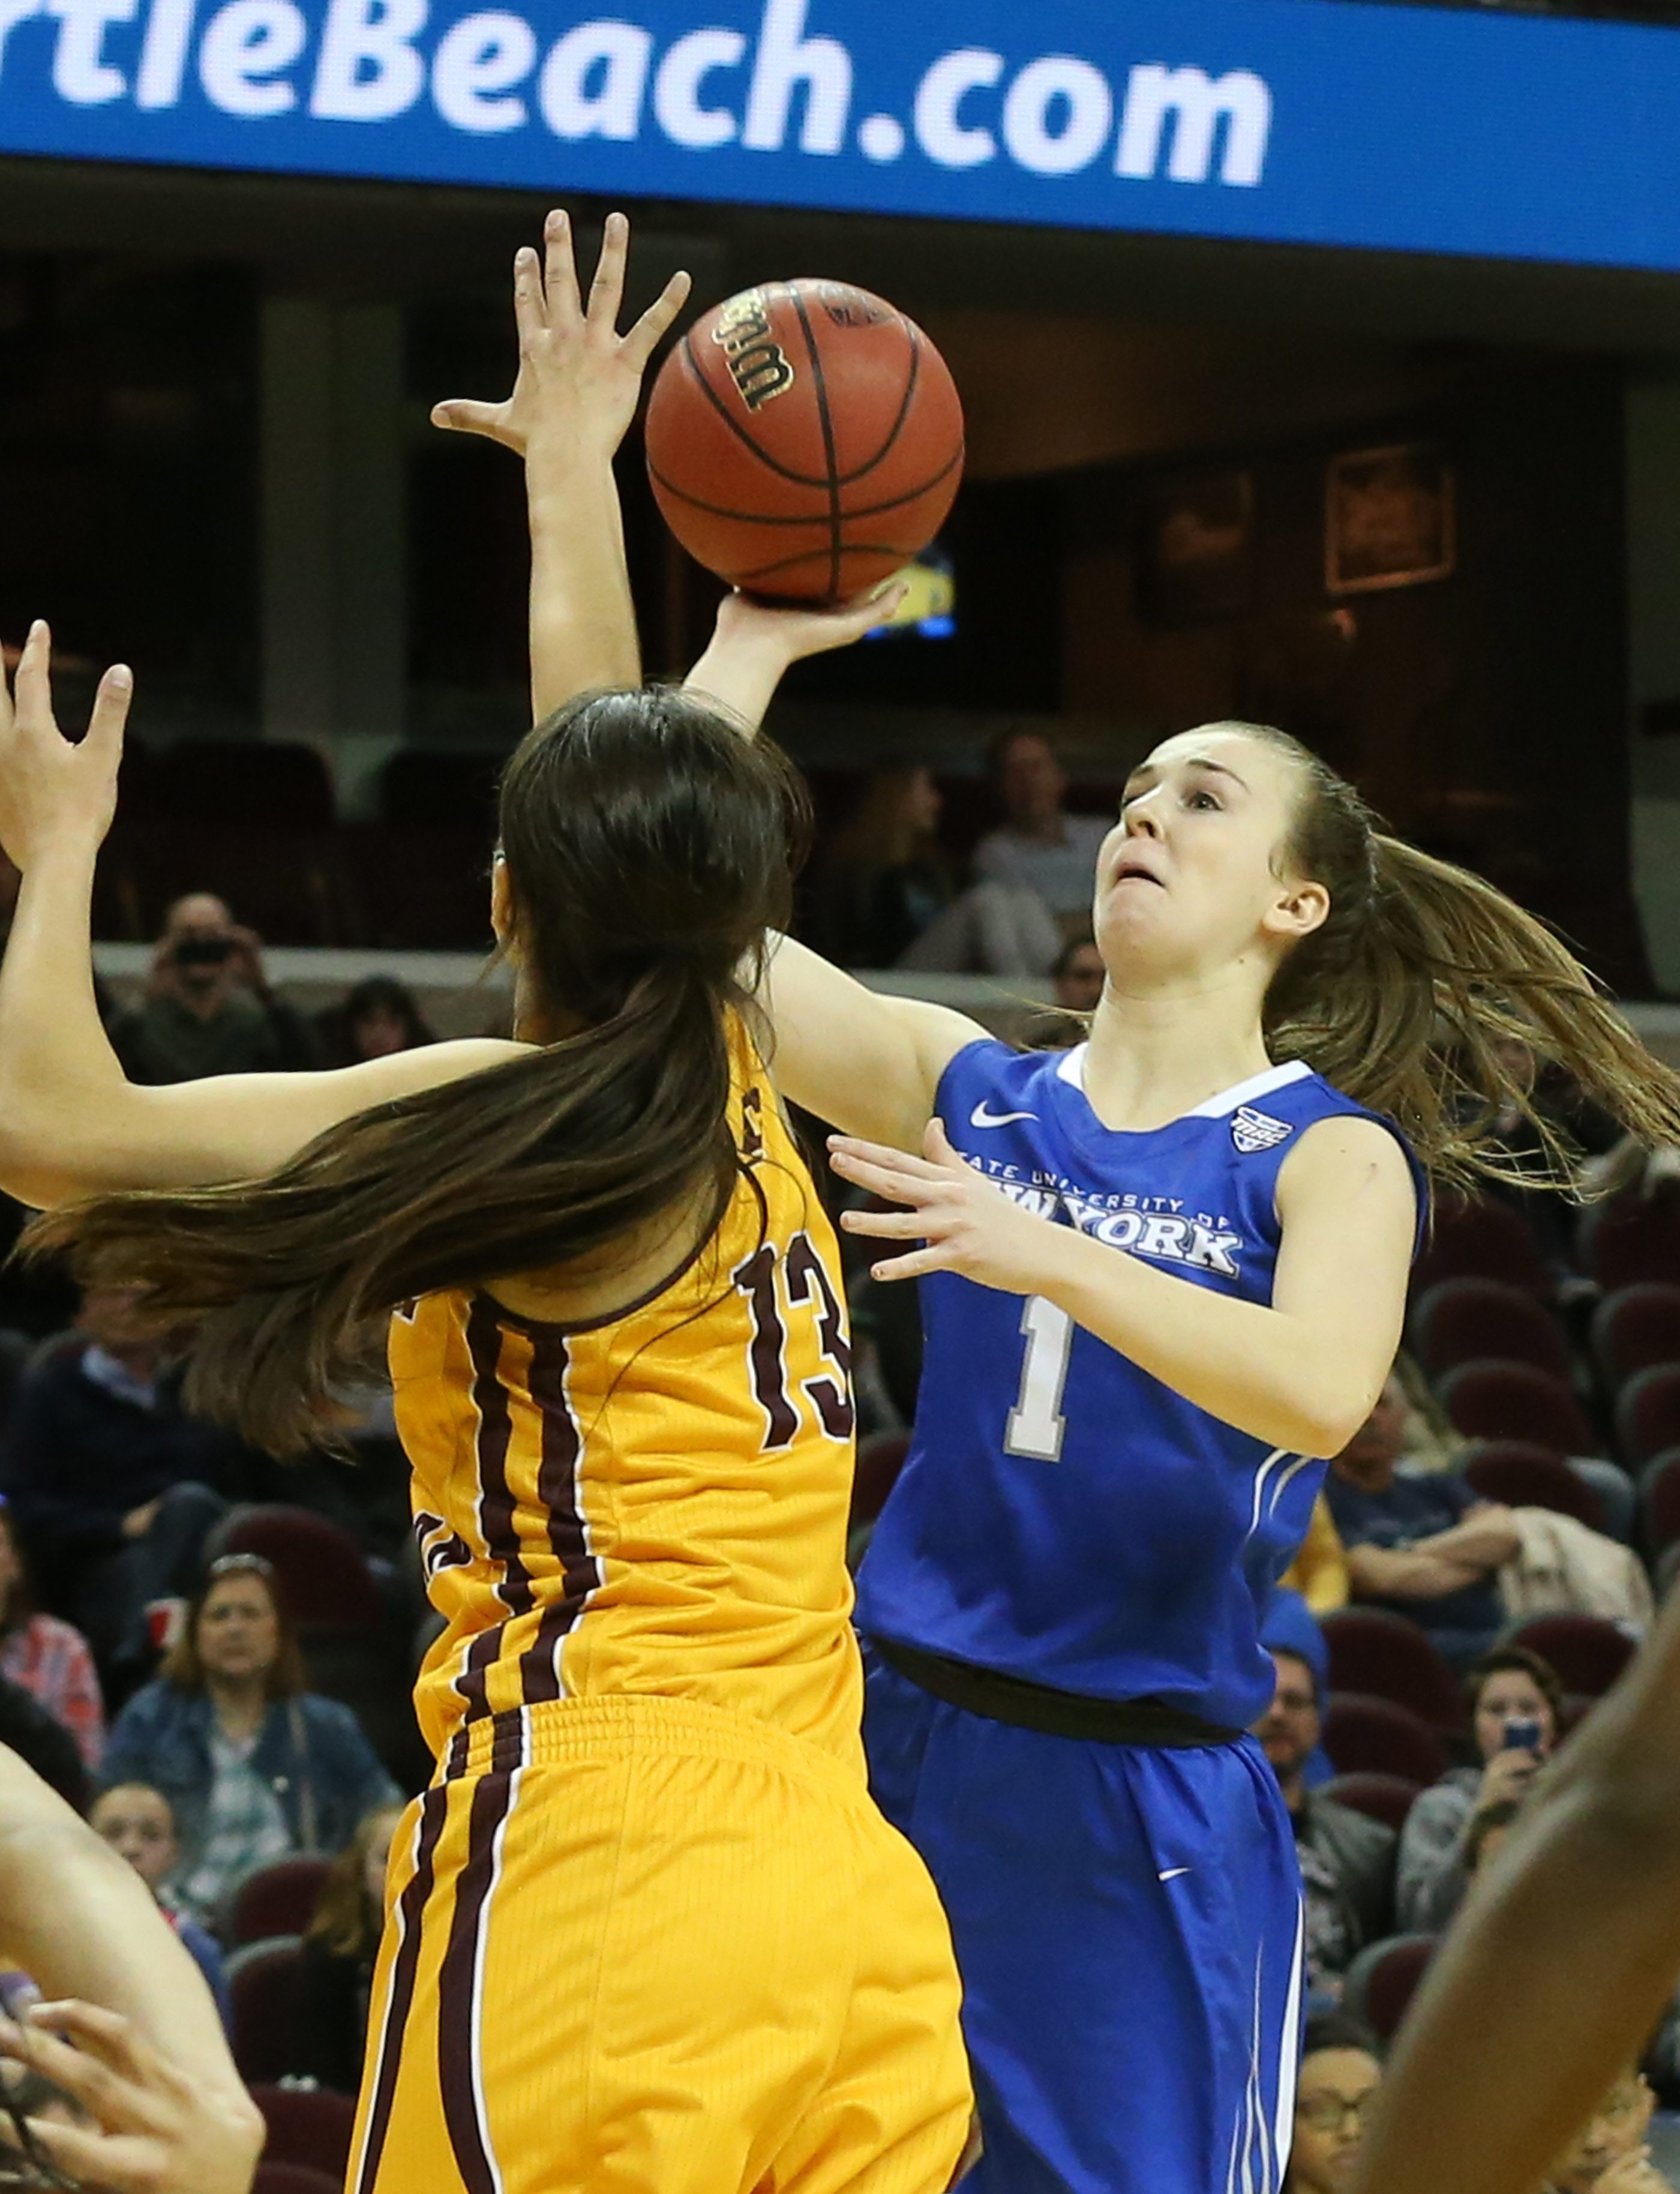 UB guard Stephanie Reid scores the game-winner over Central Michigan forward Reyna Frost in the MAC Championship game.